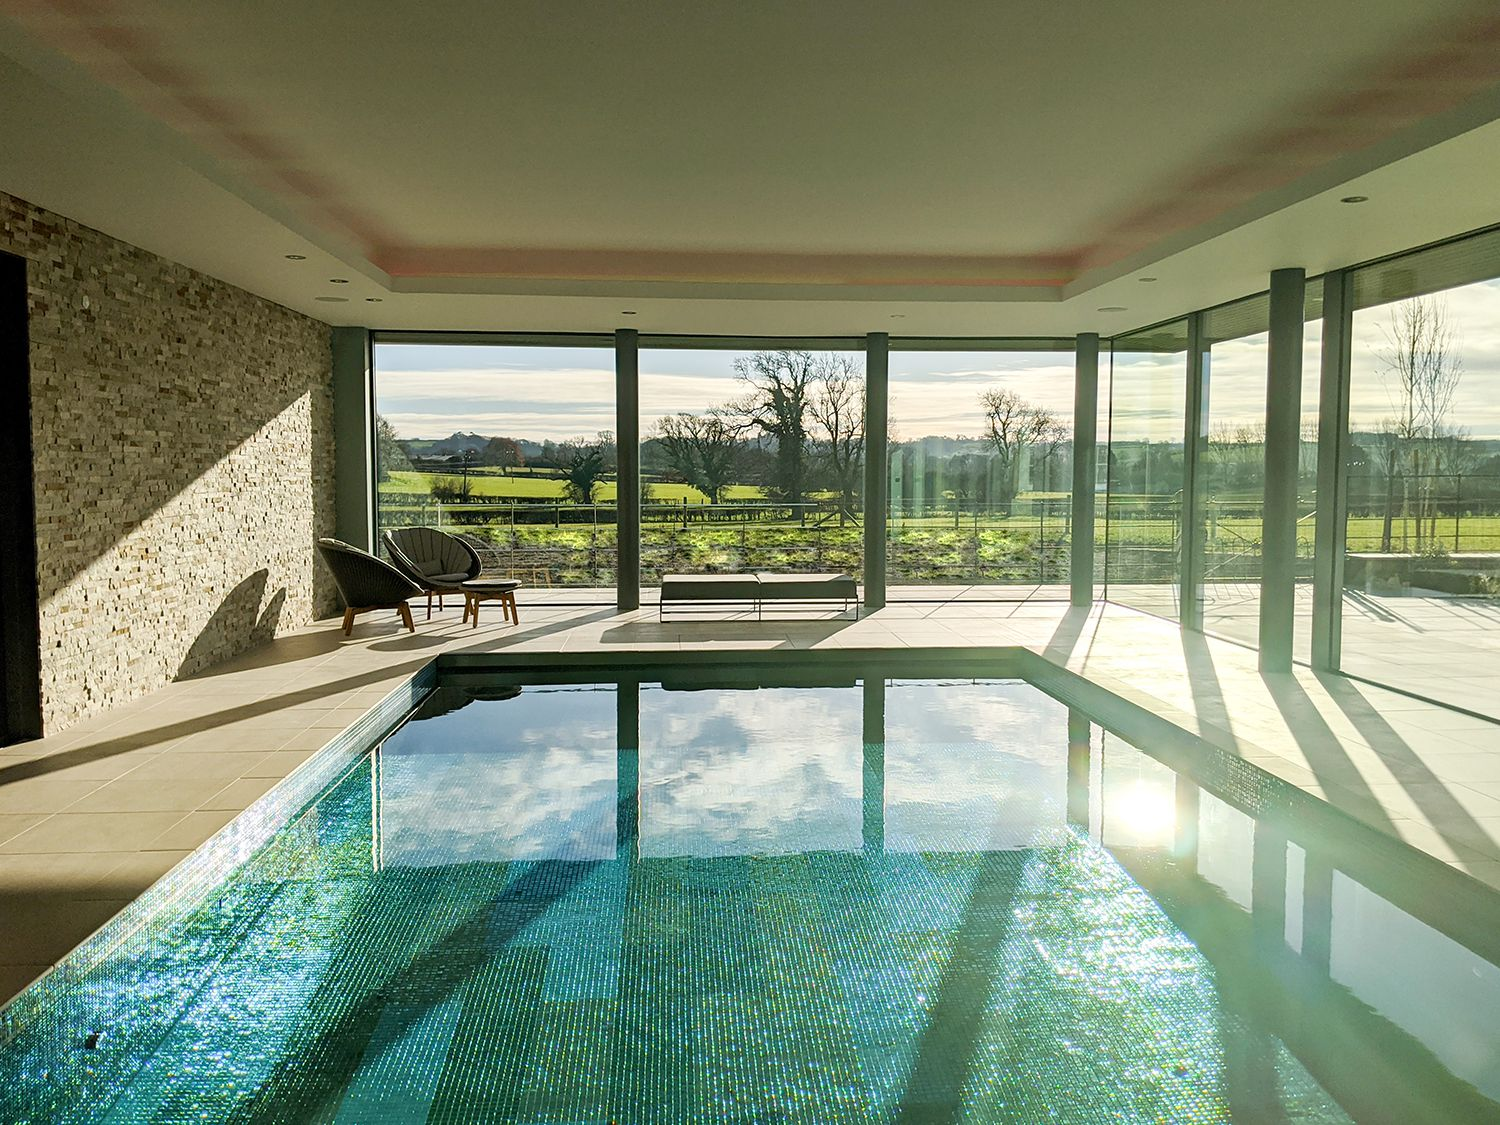 A photo looking down the length of the pool to the glazing and fields beyond.